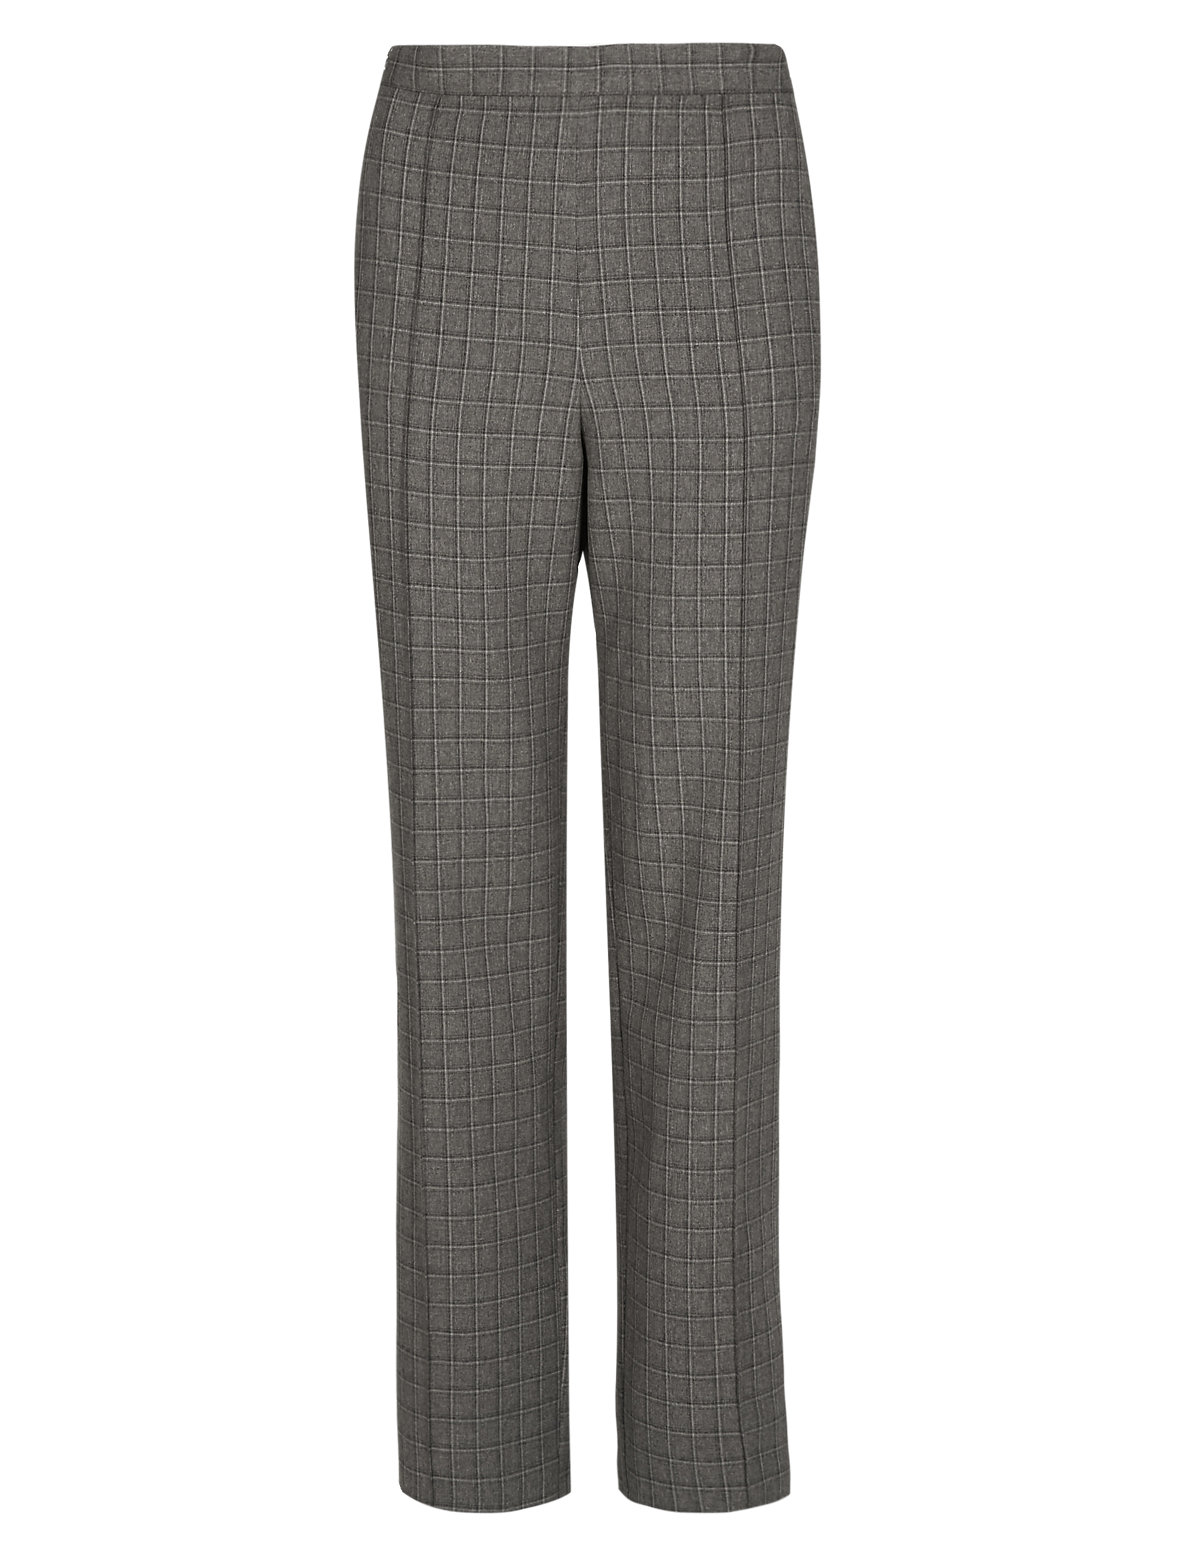 M&5 MINK Straight Leg Checked Trousers - Size 16 to 18